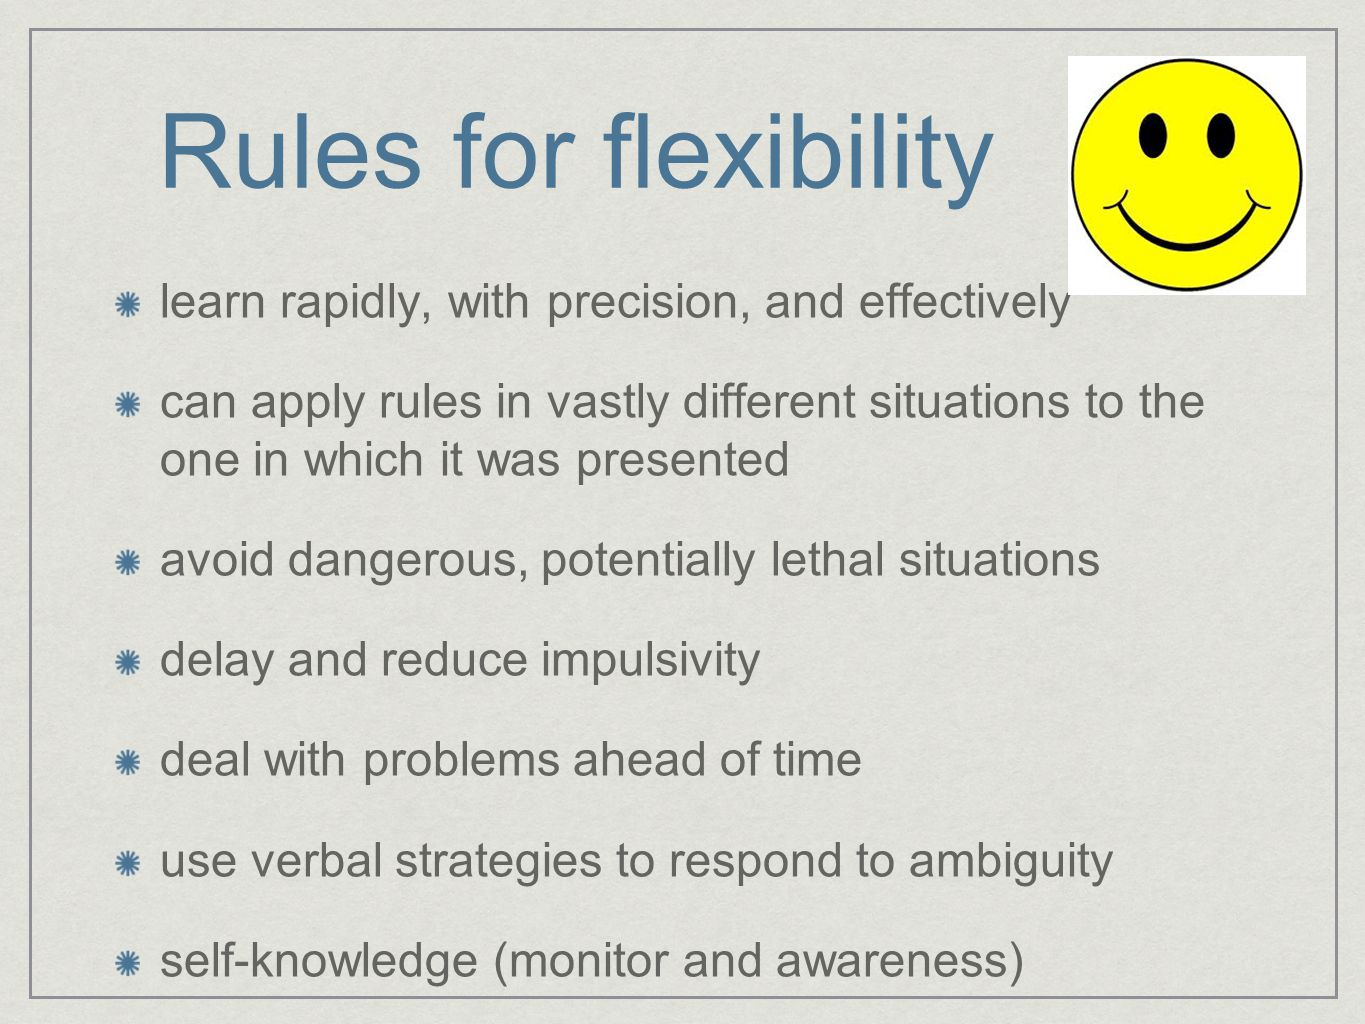 Rules for flexibility learn rapidly, with precision, and effectively can apply rules in vastly different situations to the one in which it was presented avoid dangerous, potentially lethal situations delay and reduce impulsivity deal with problems ahead of time use verbal strategies to respond to ambiguity self-knowledge (monitor and awareness)